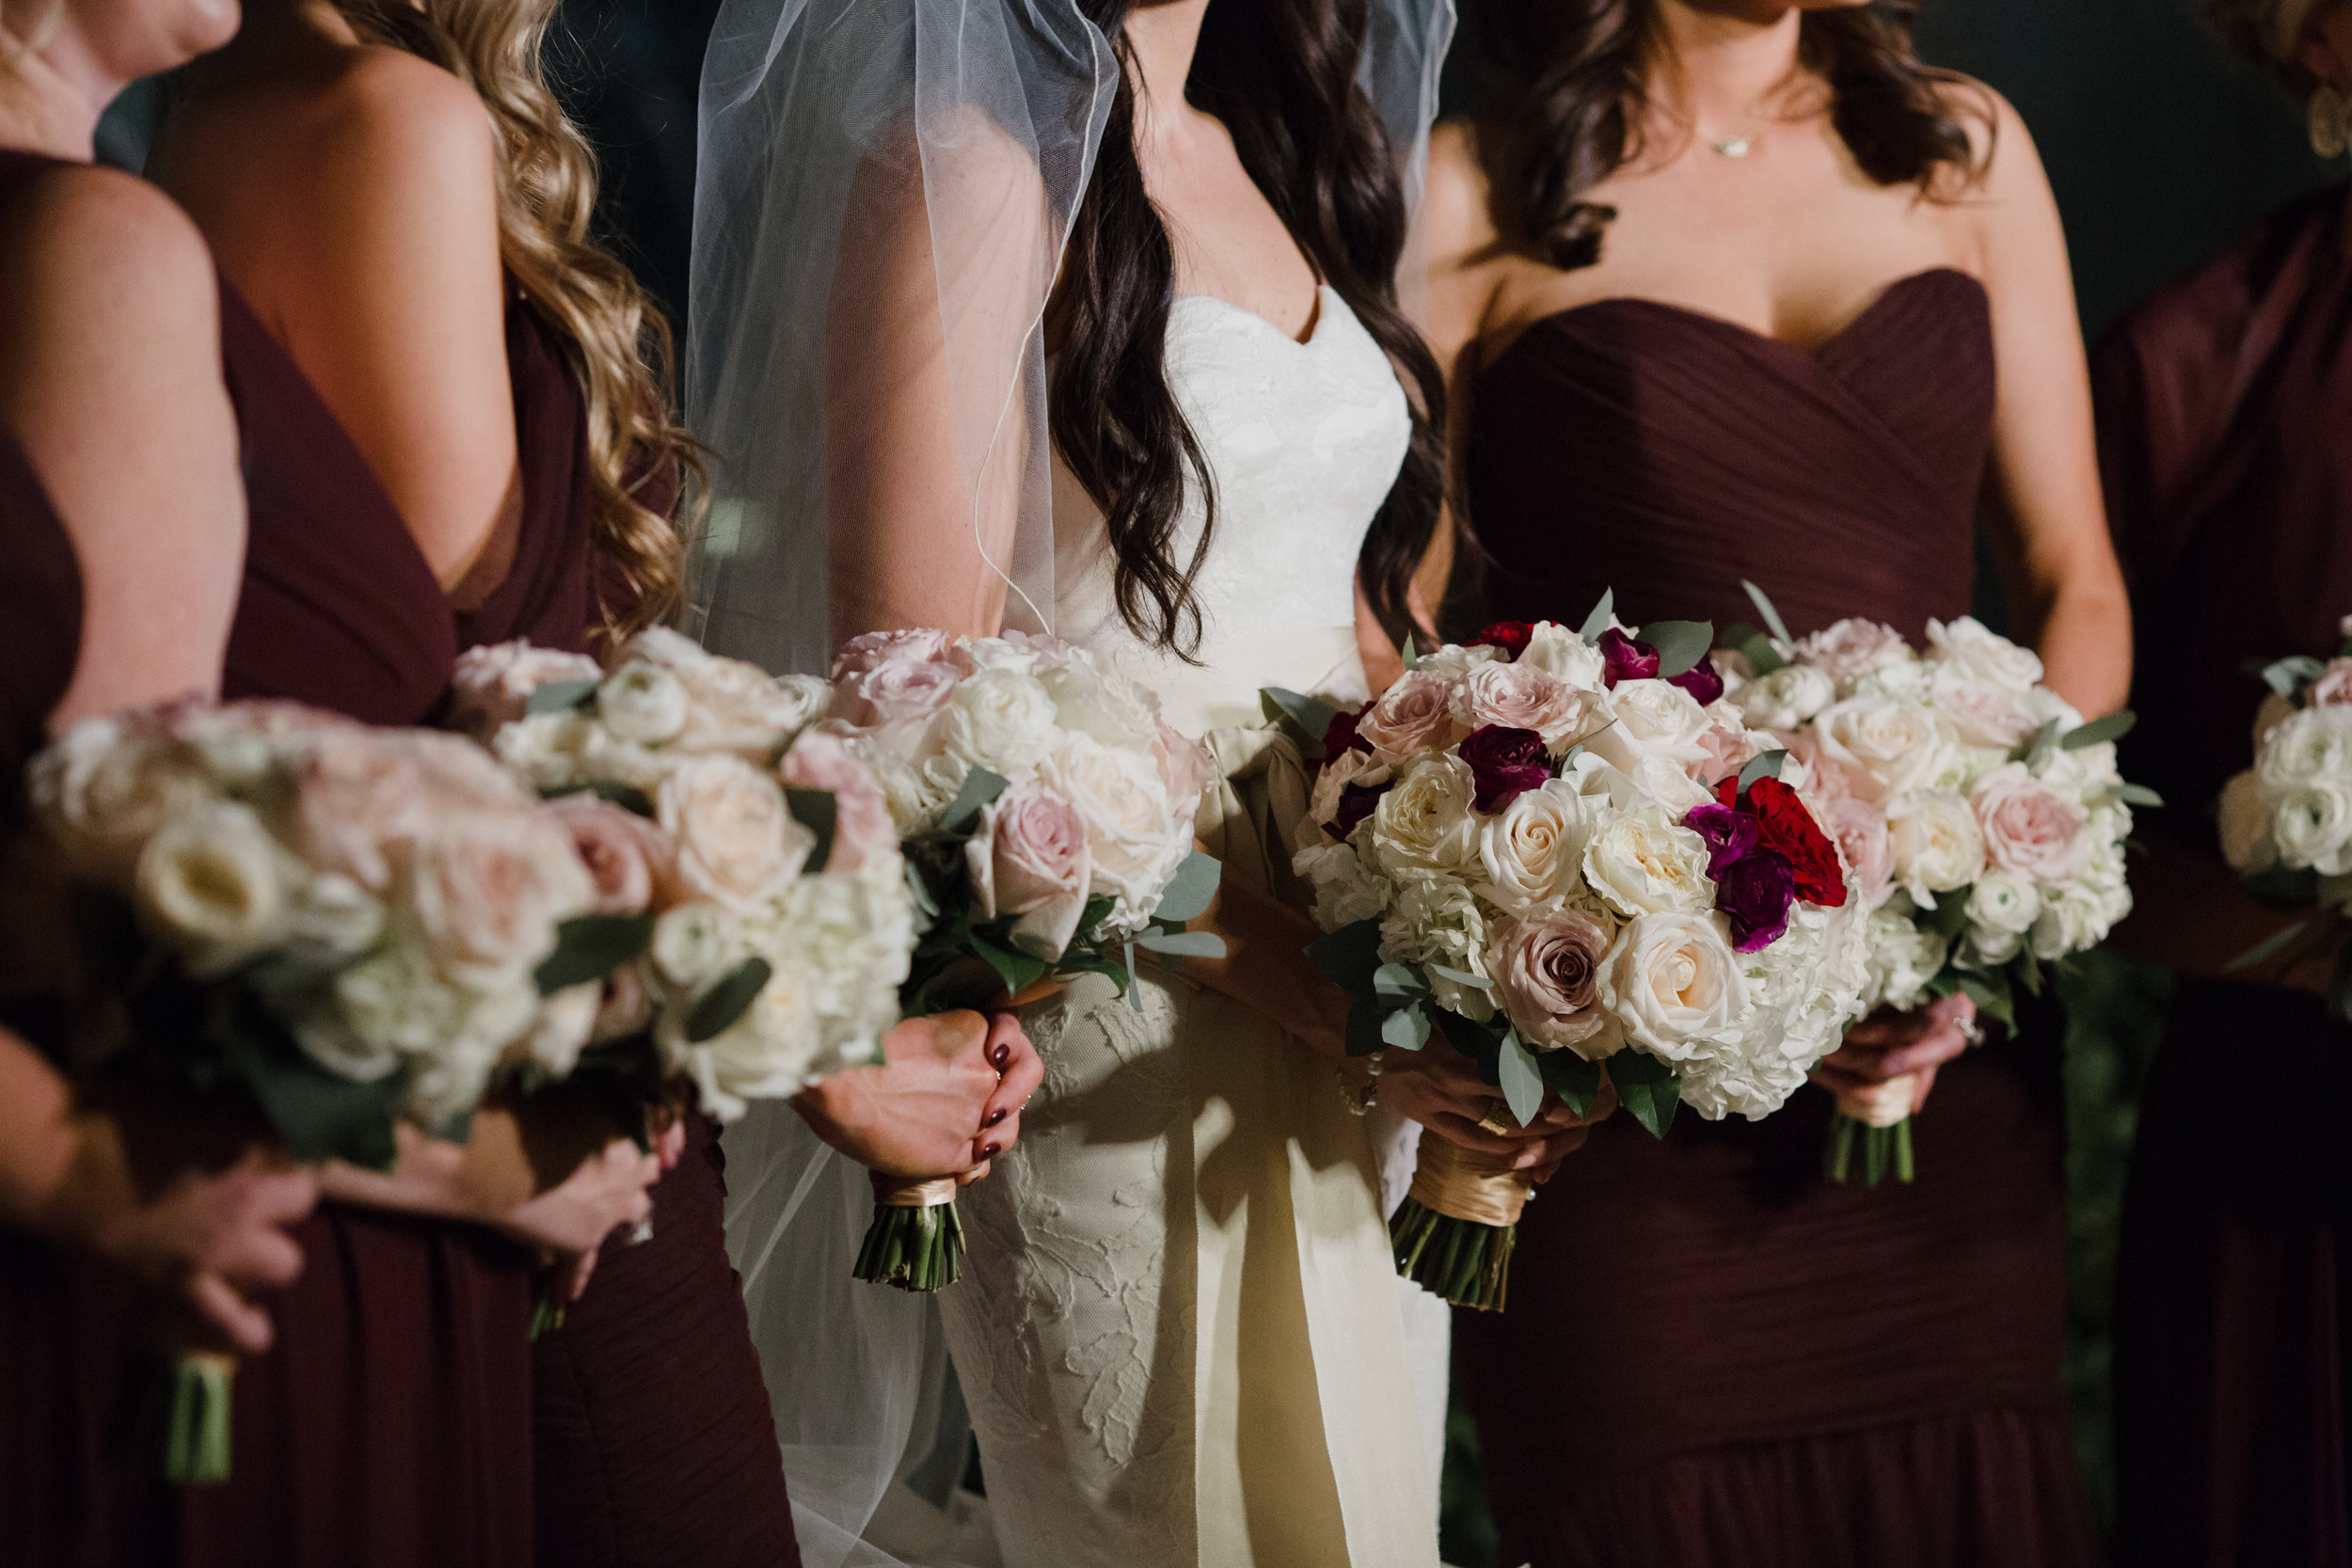 Bridesmaids bouquets in ivor and burgandy.Luxury wedding at the Mandarin Oriental with a color scheme of white, blush, and pops of wine red produced by Las Vegas Wedding Planner Andrea Eppolito with photos by Stephen Salazar Photography.